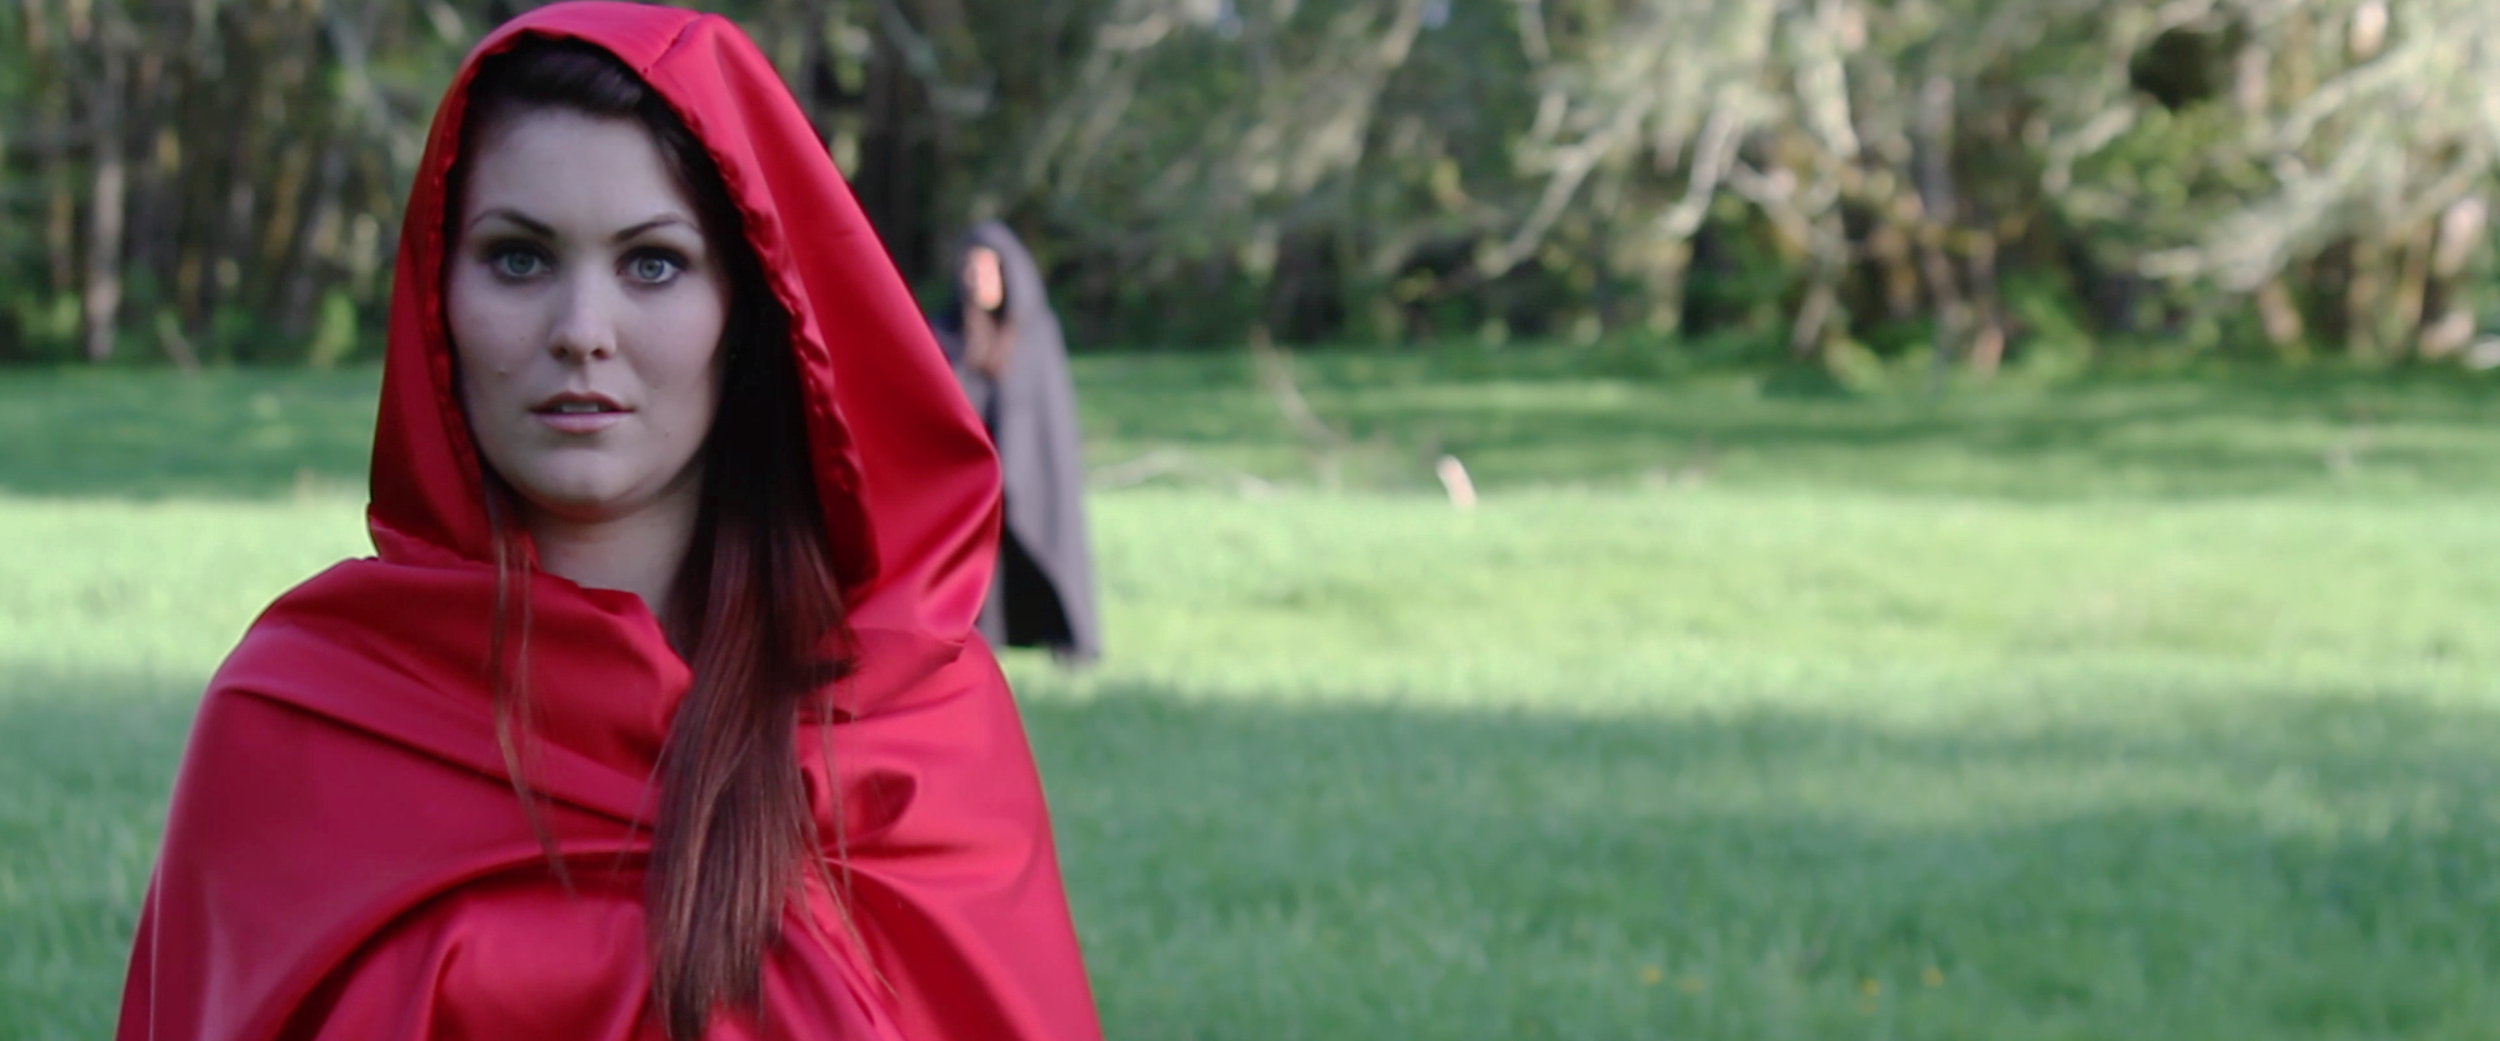 FIGHT  - MUSIC VIDEO  DIRECTOR: TAYLOR GILKESON   WATCH